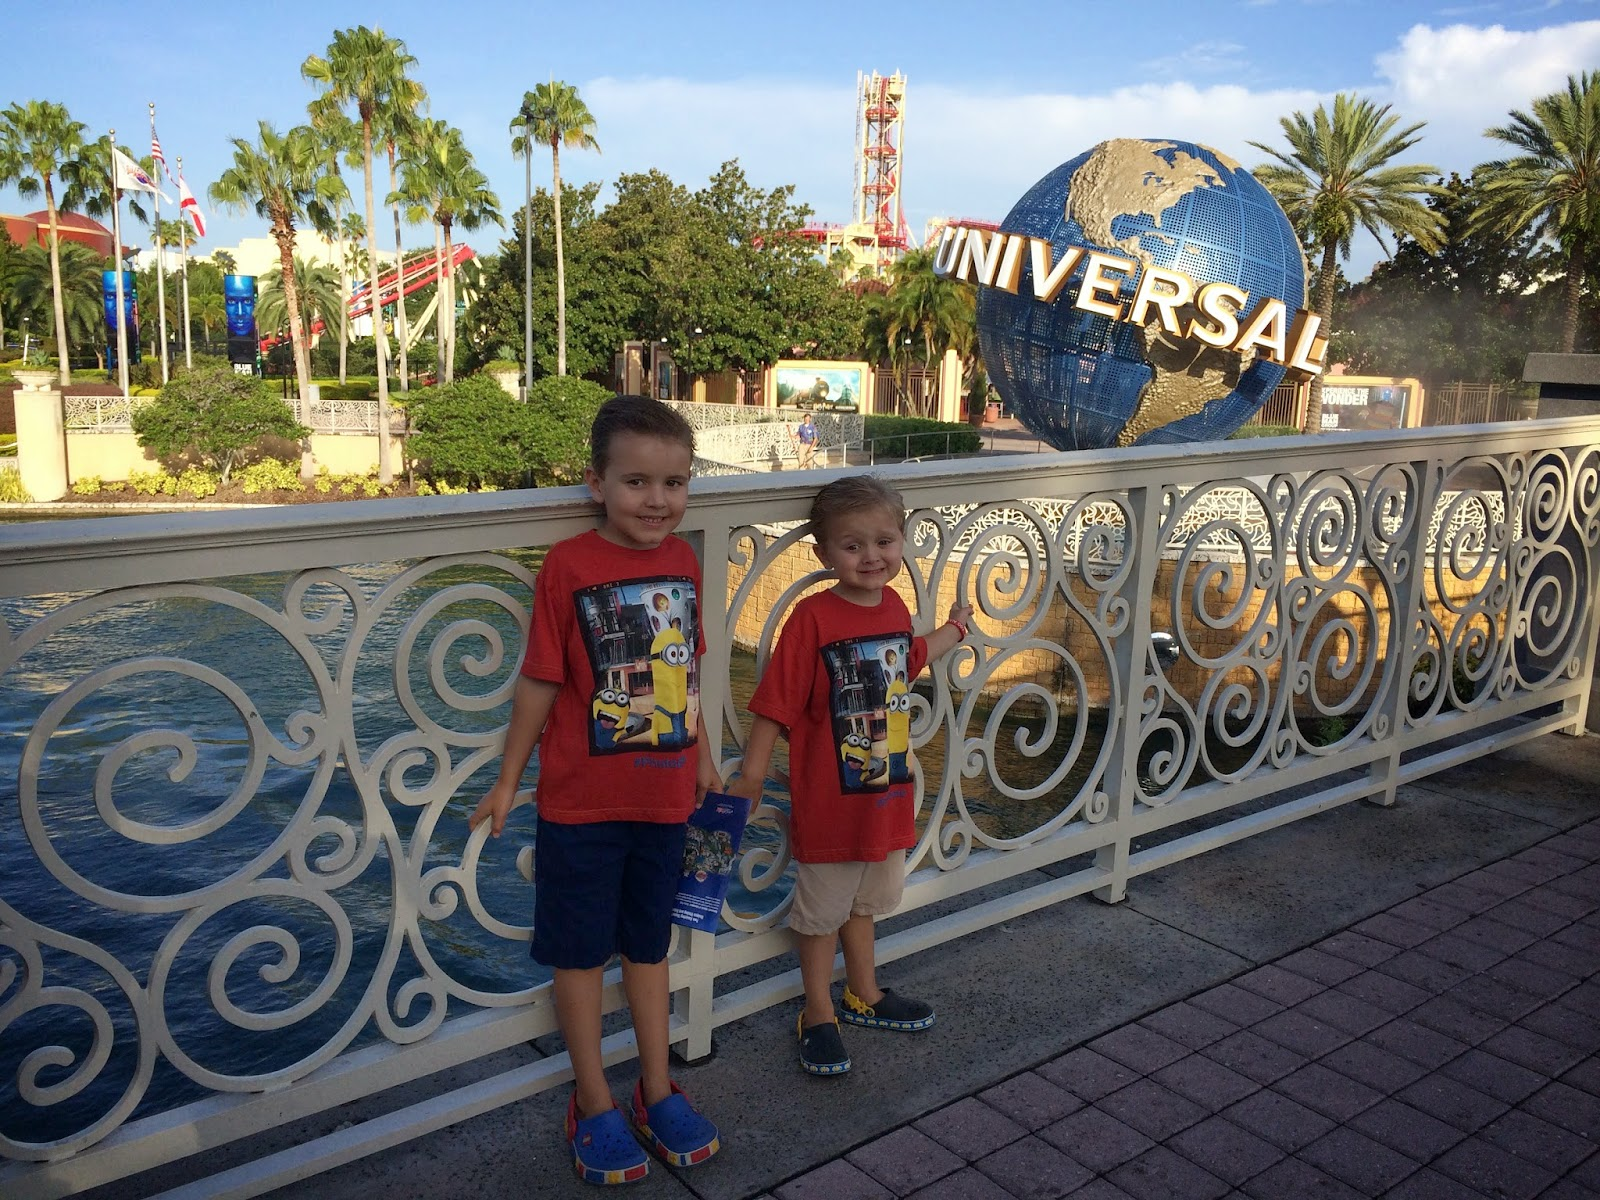 Fun Family Vacation Amp Travel Tips Universal Studios Orlando Tips For A Great Vacation